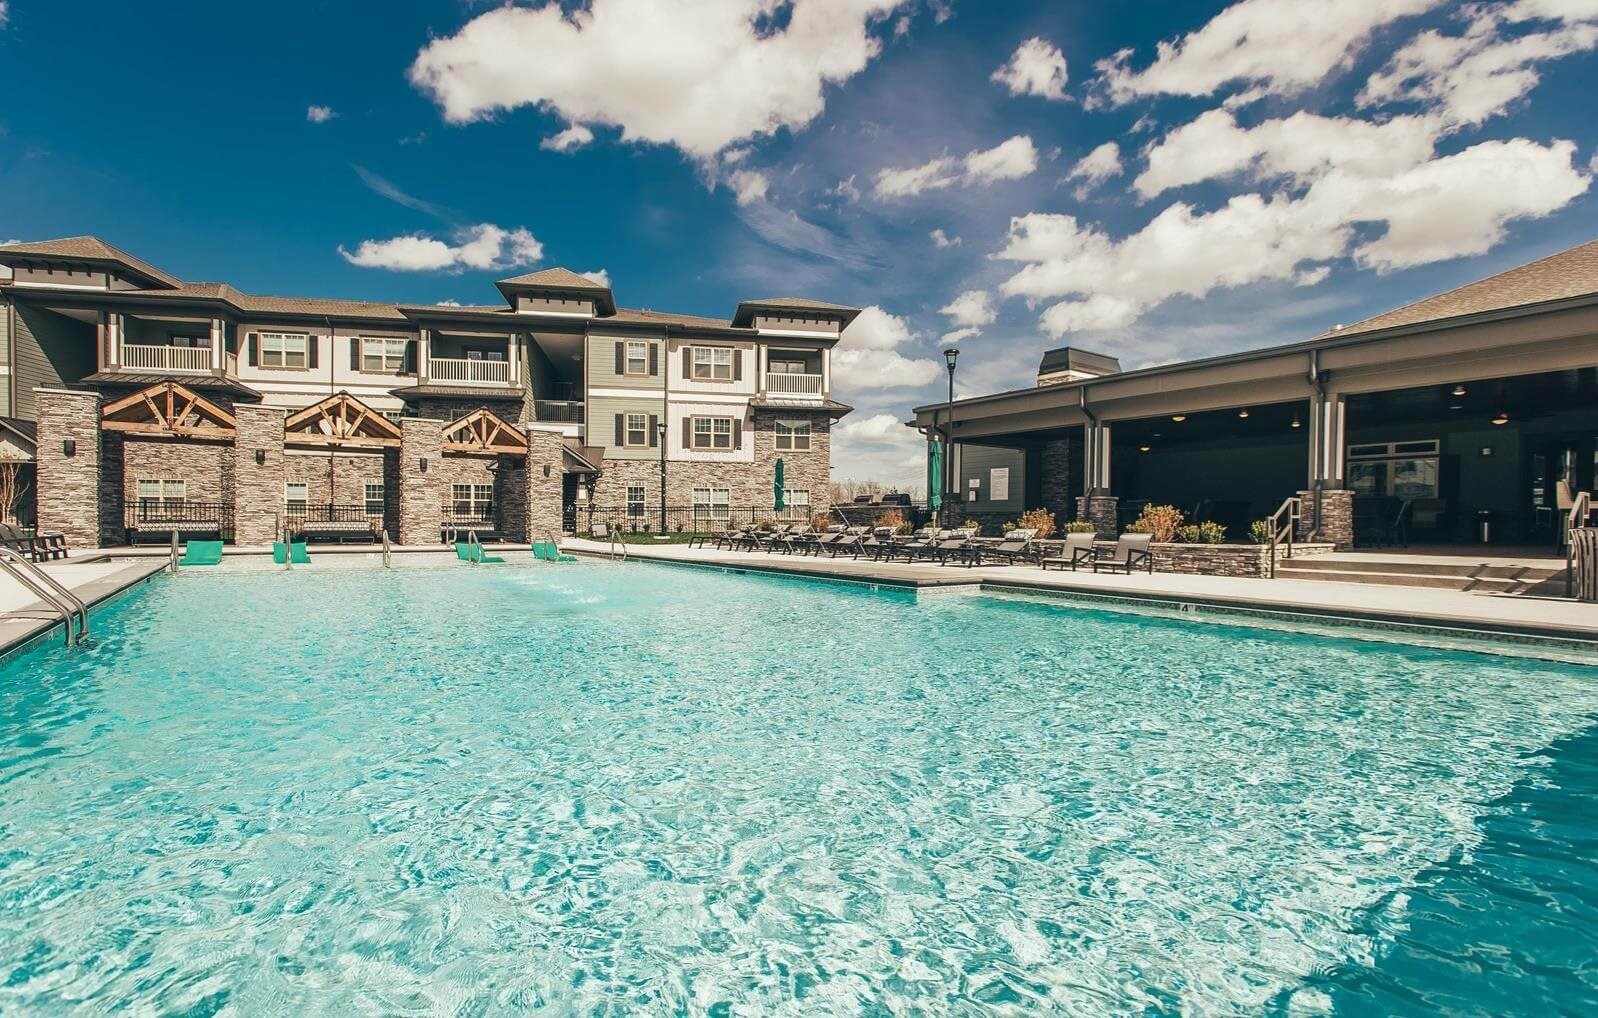 Pool Shot at Vintage Blackman Apartments in Murfeesboro, Tennessee